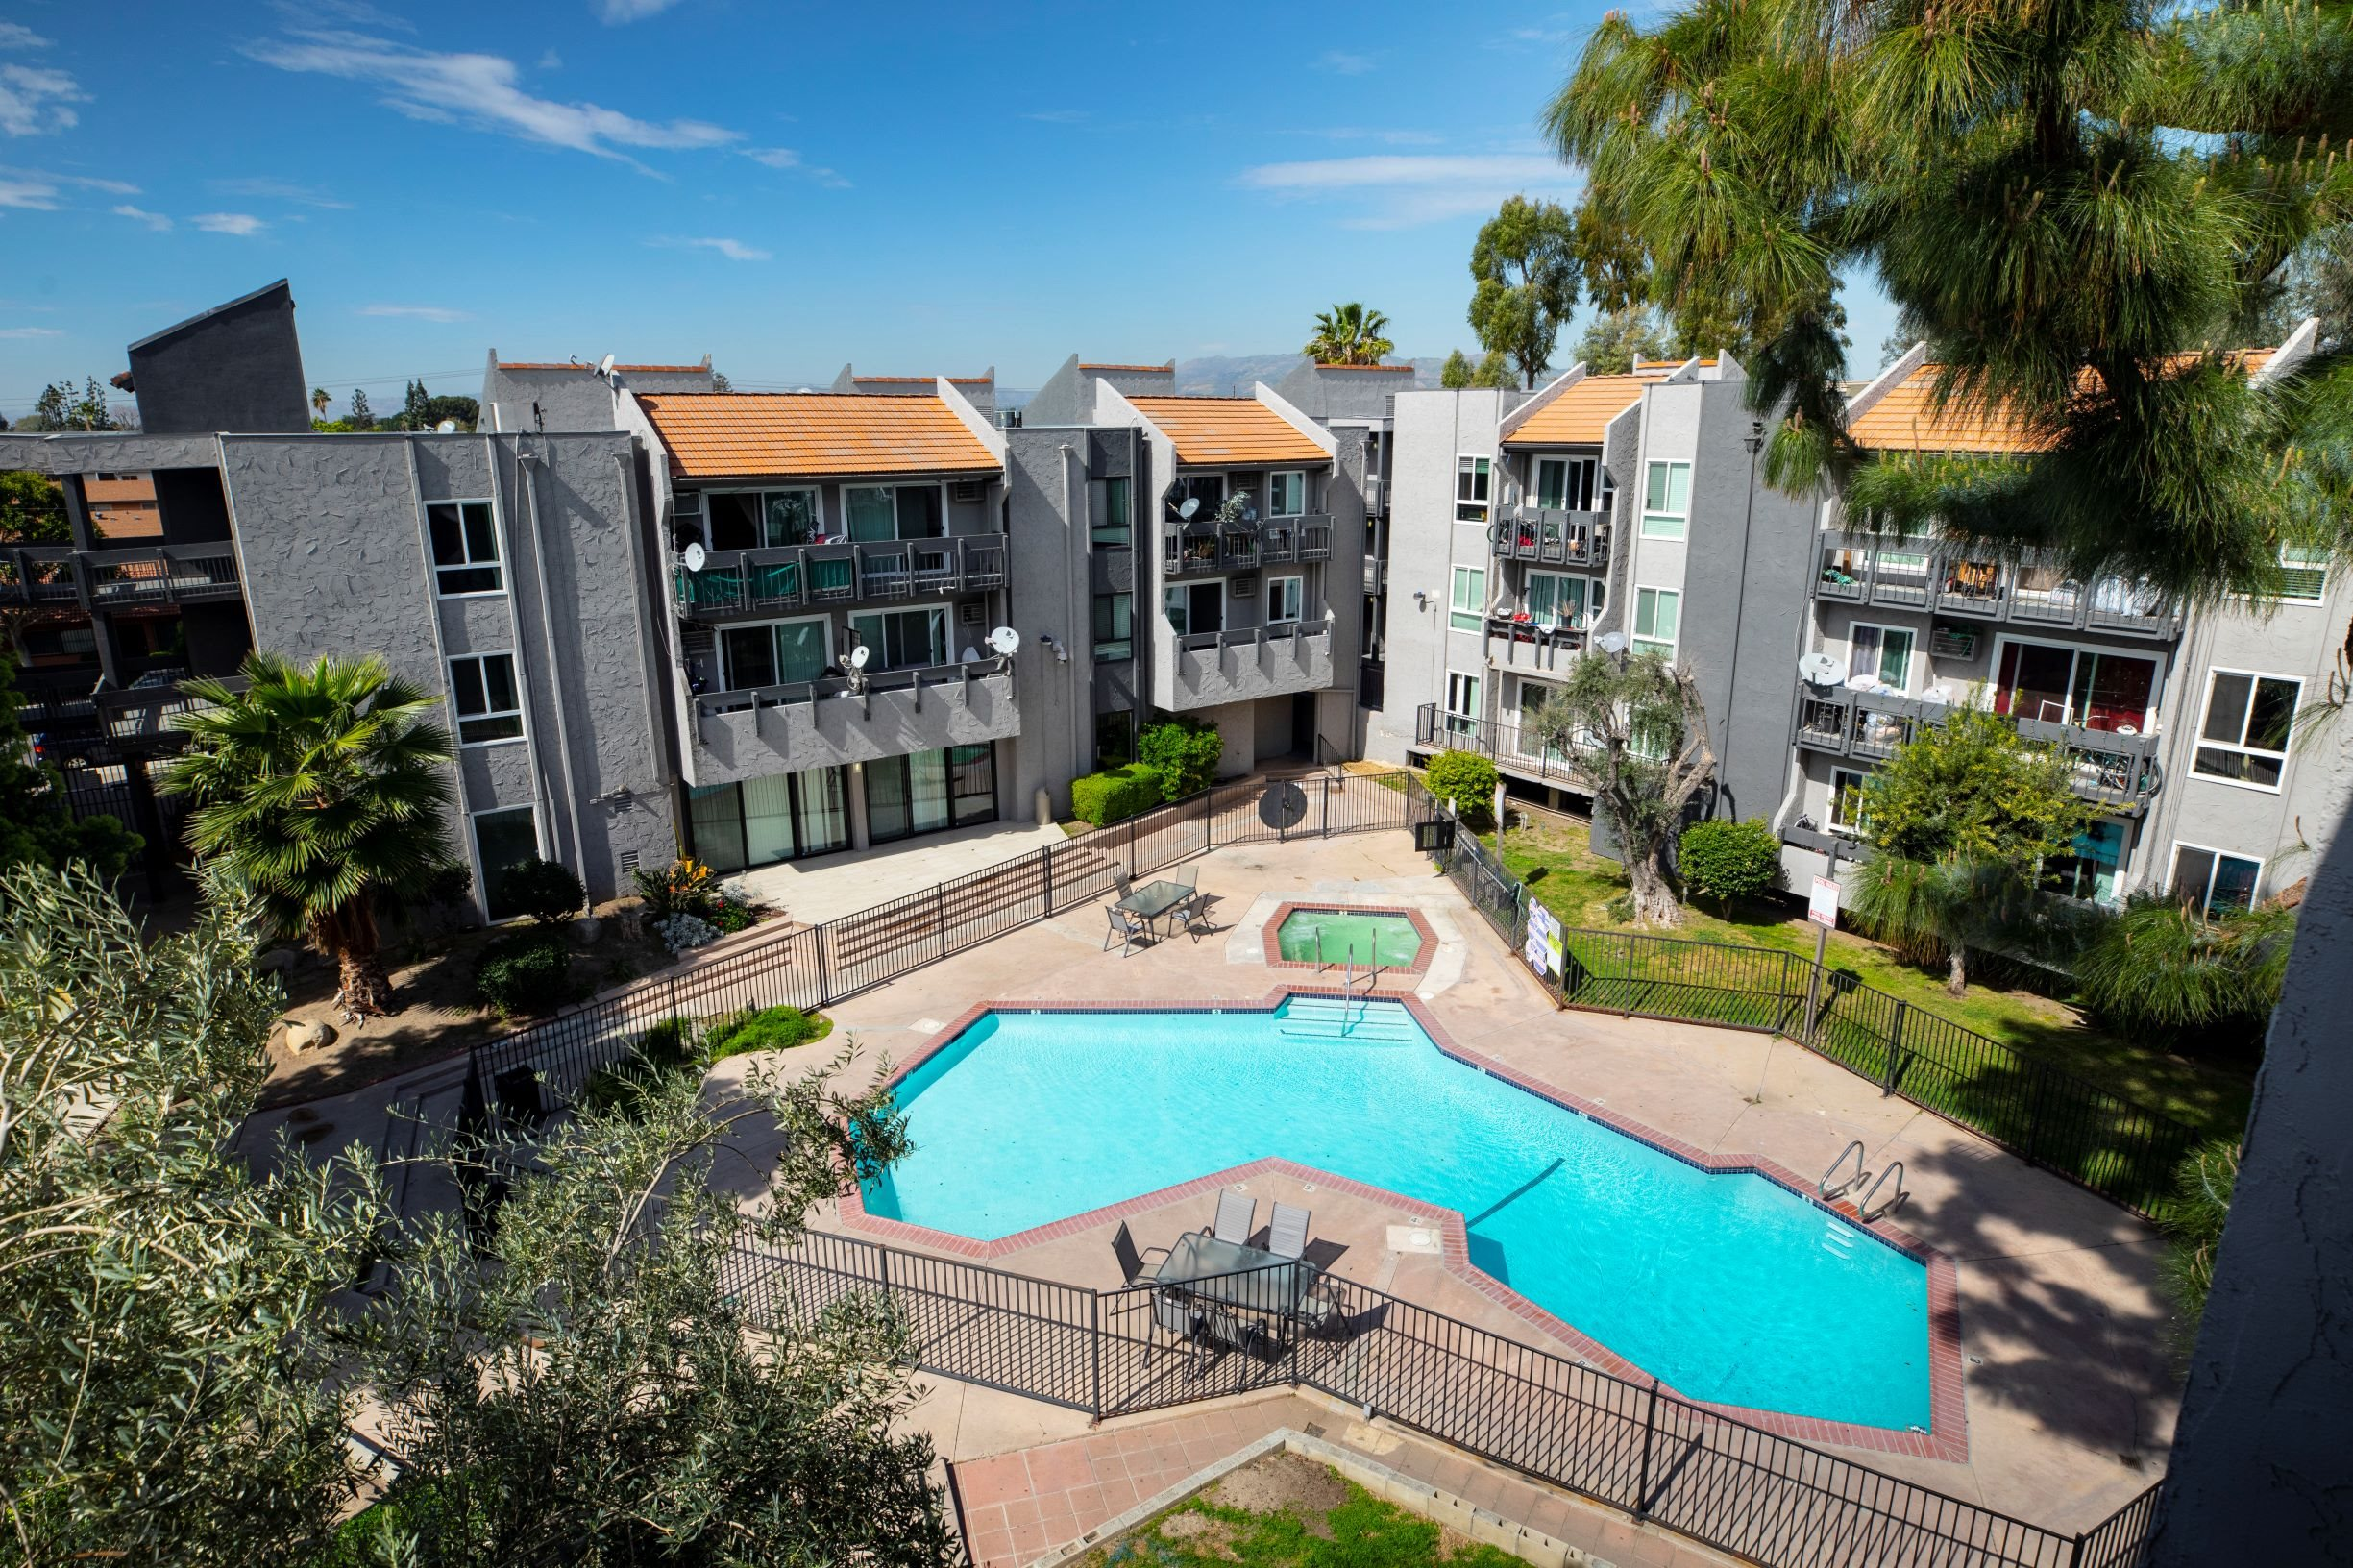 Image of Midtown Apartment Homes in Panorama Heights, California